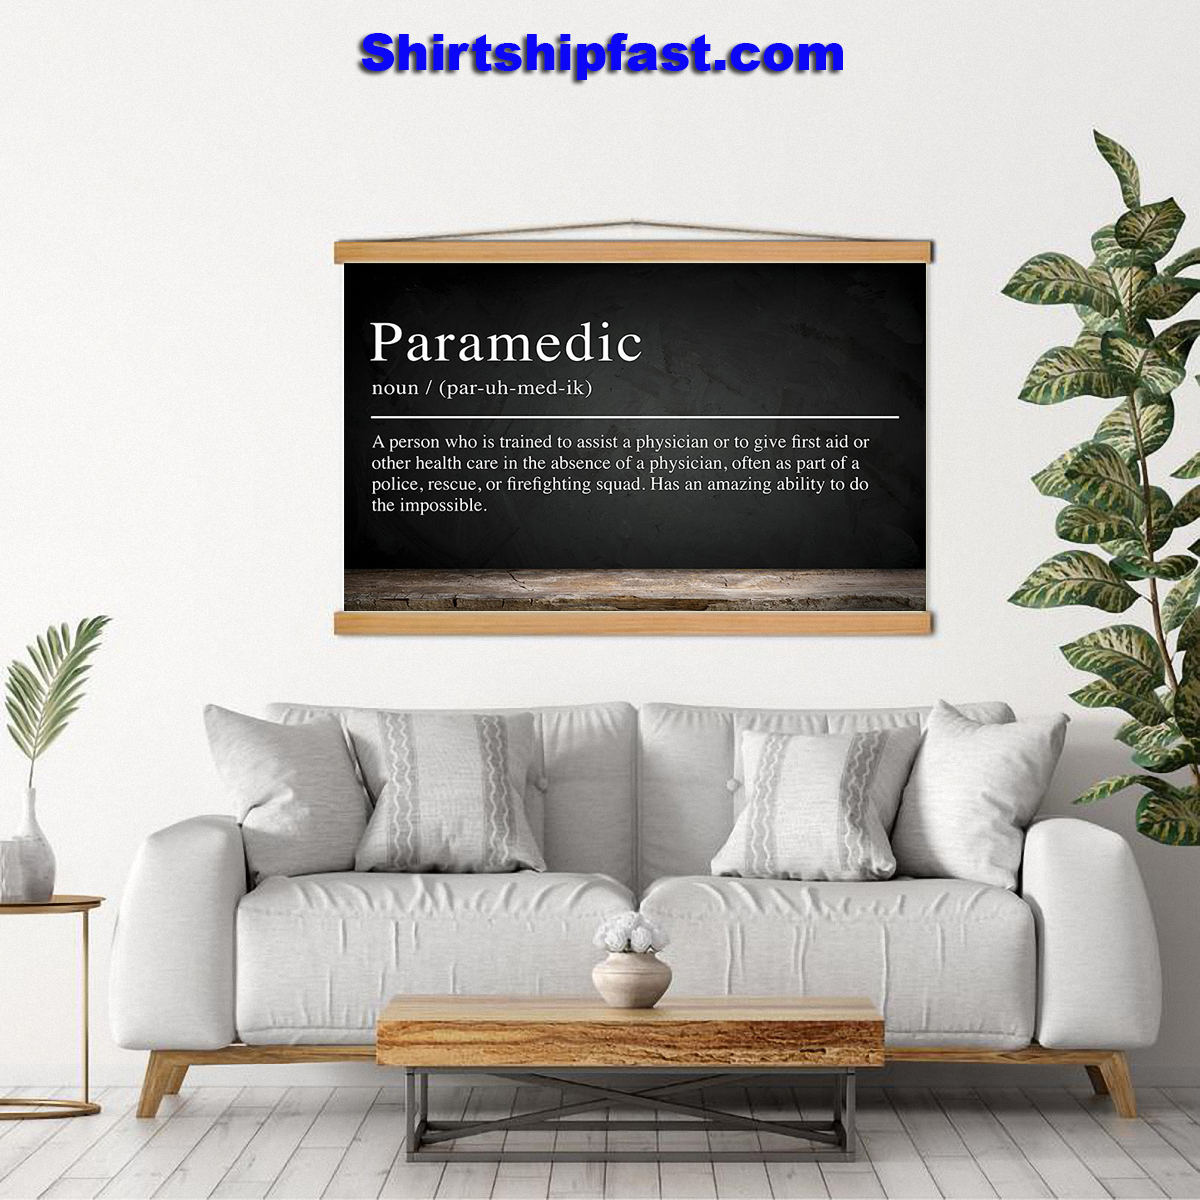 Paramedic definition poster - Picture 2